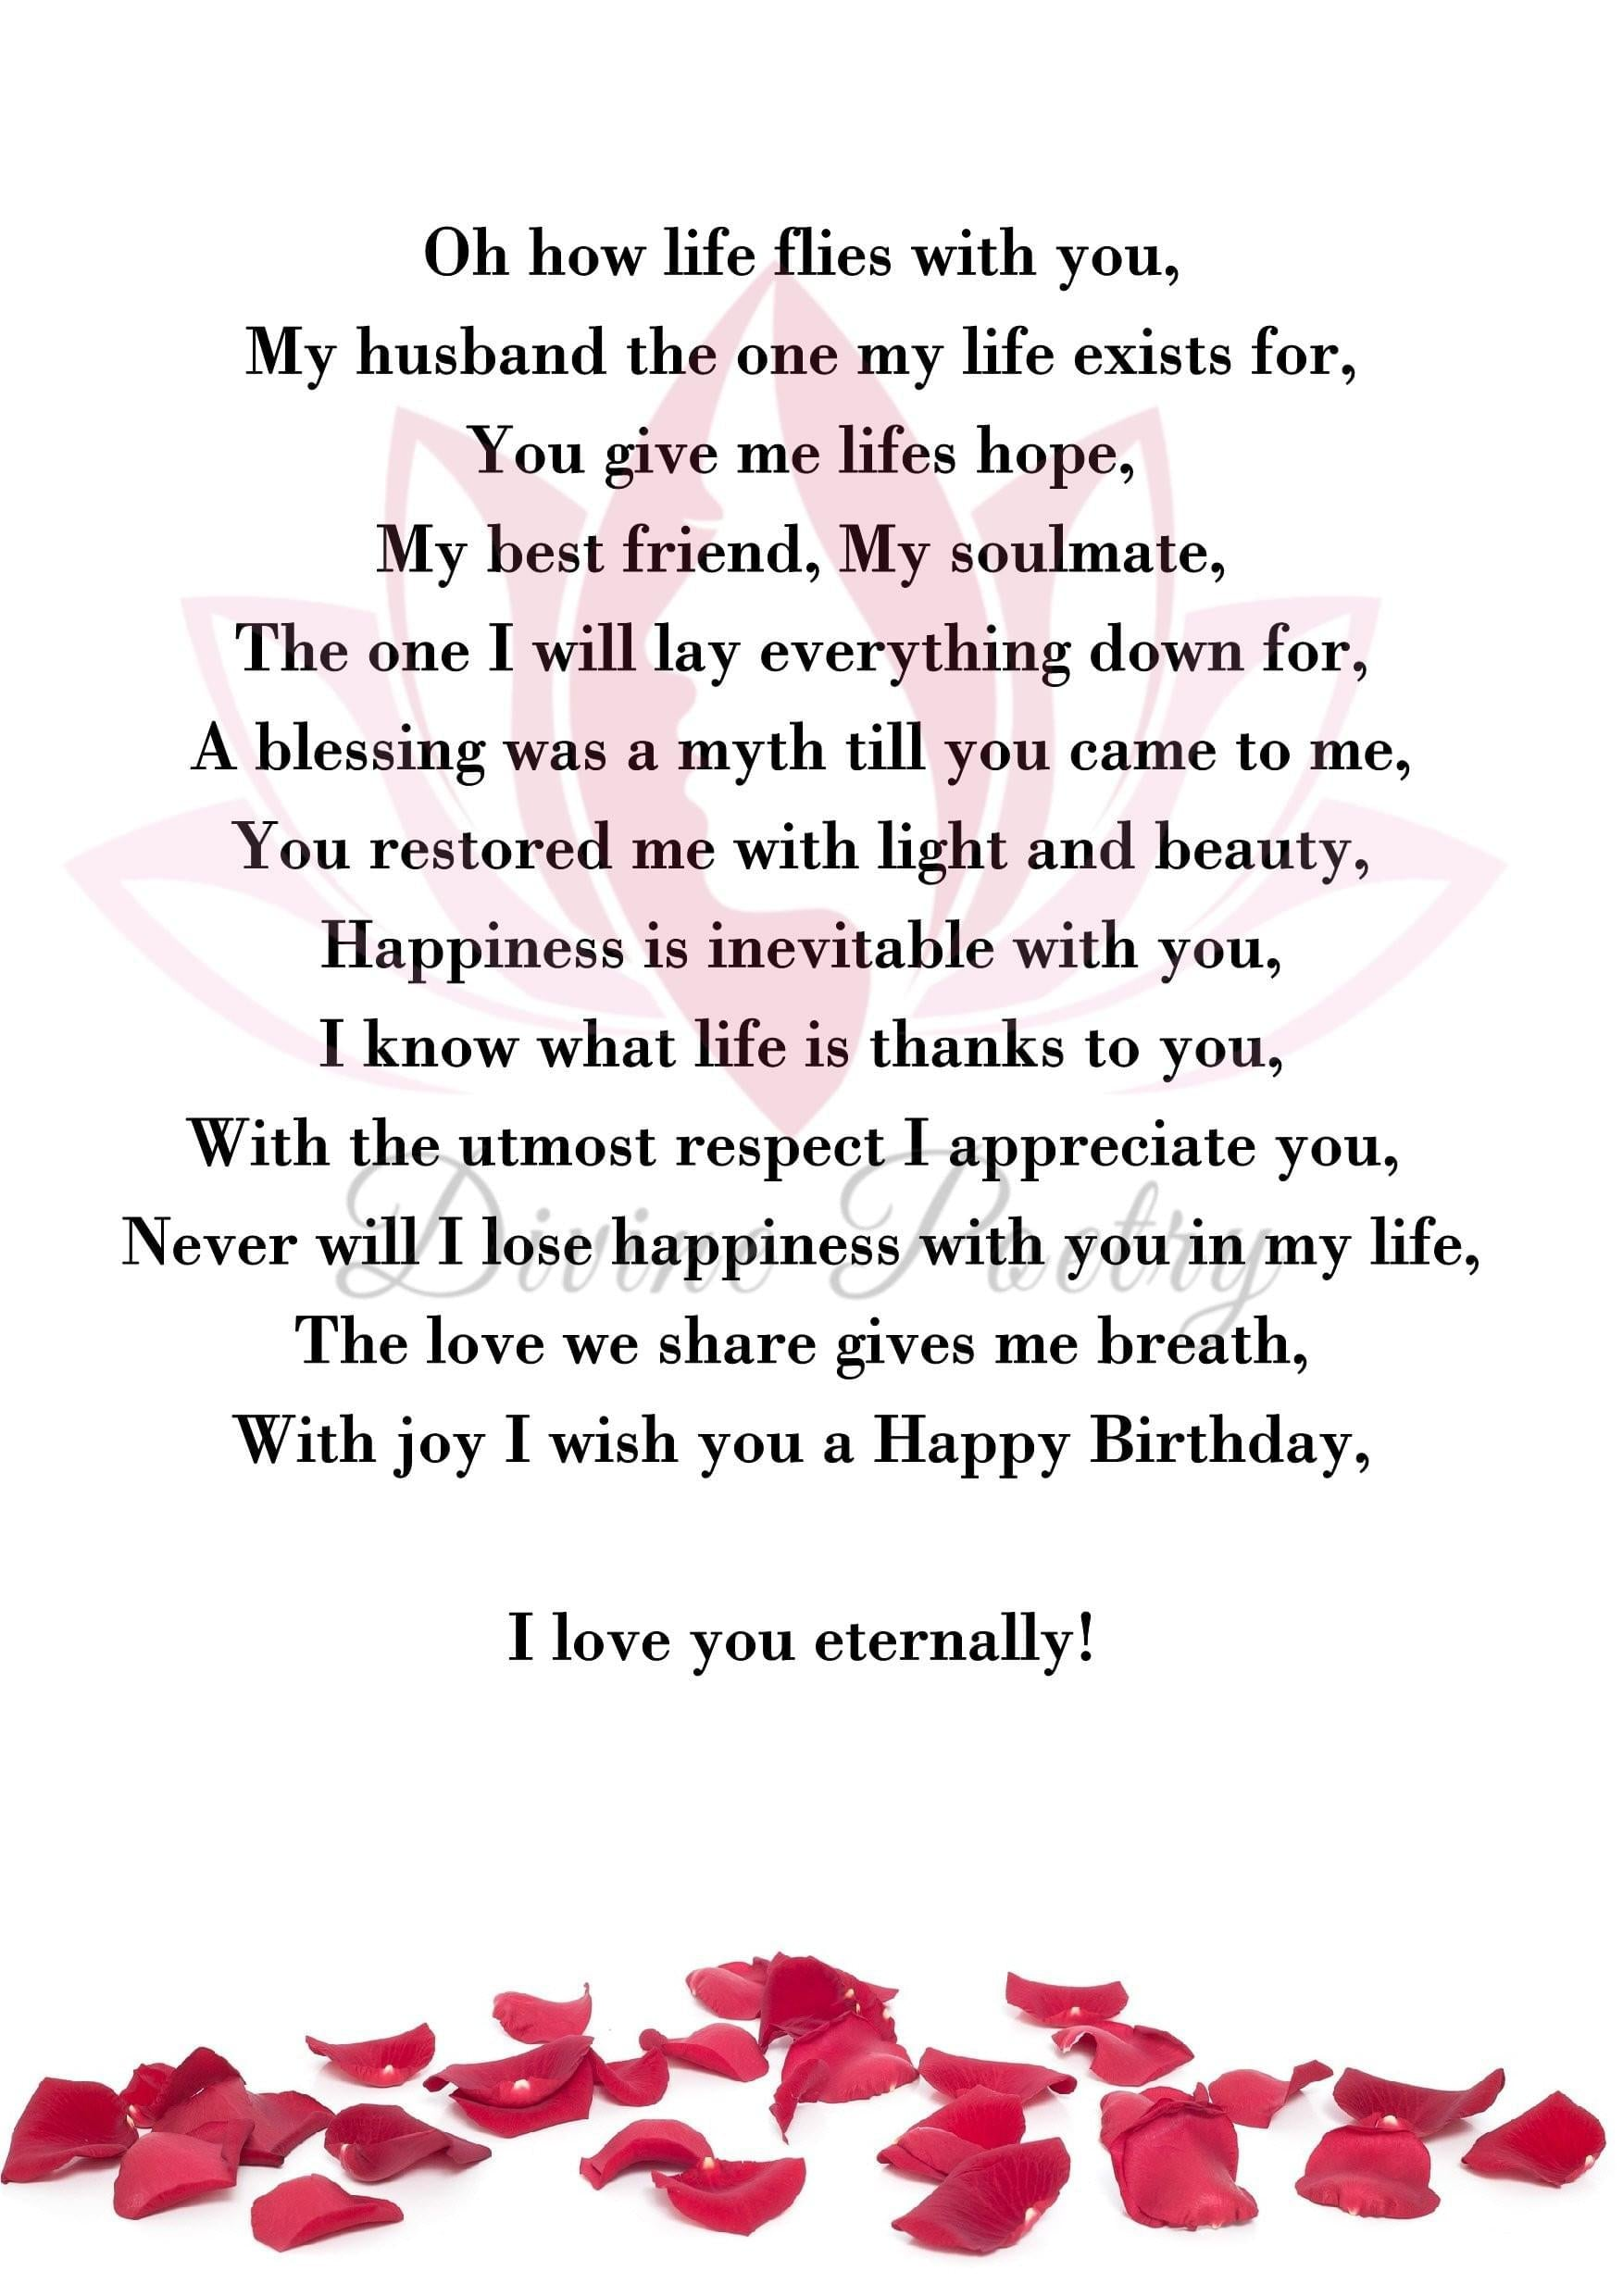 To My Amazing Husband - Divine Poetry